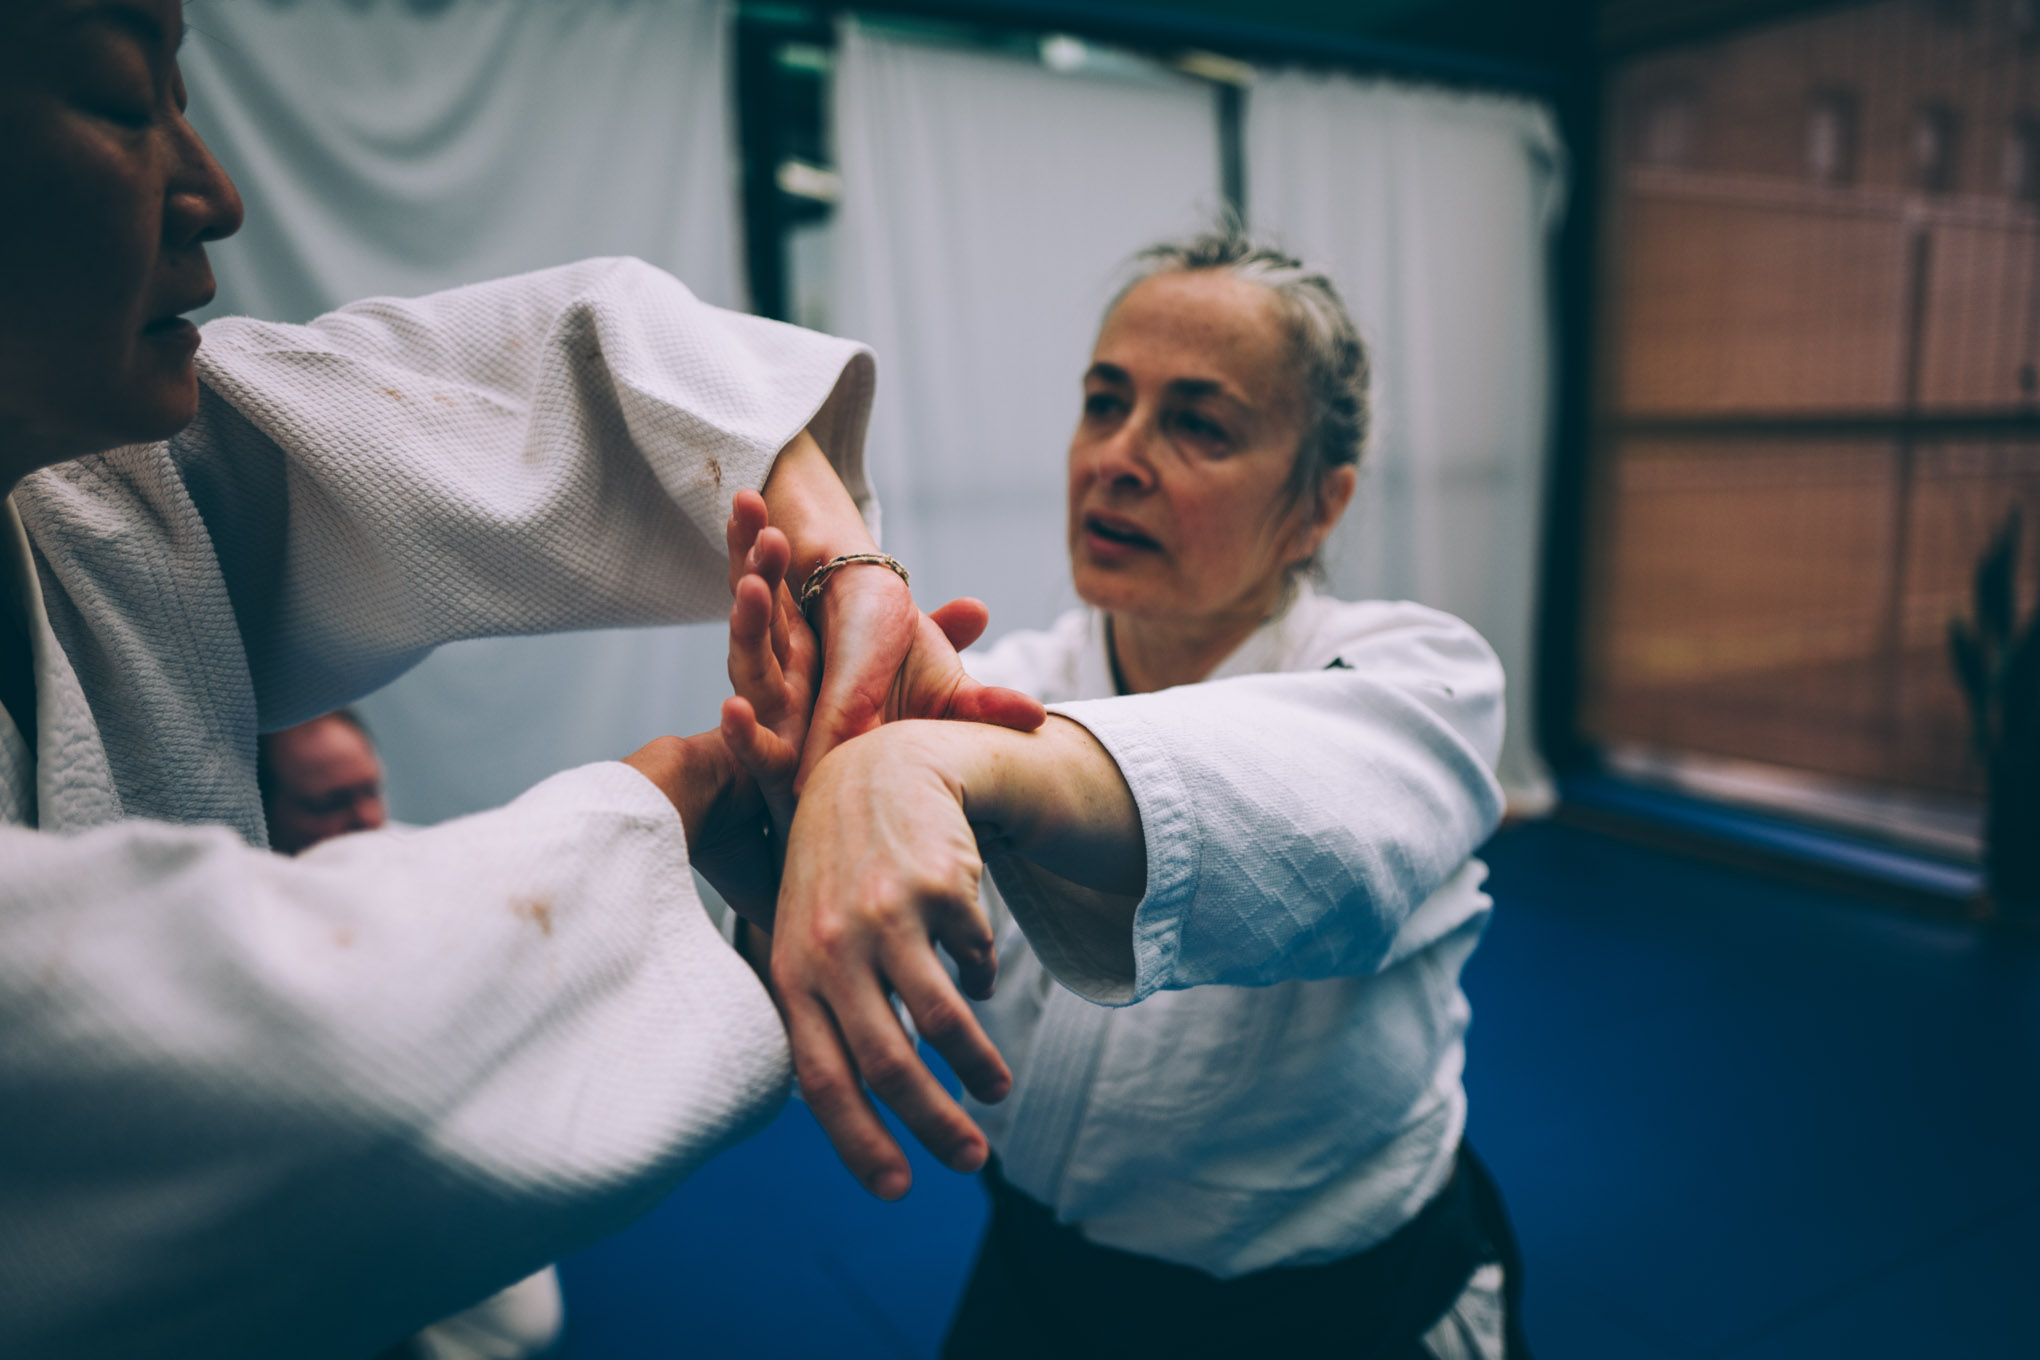 claire Keller teaches the Aikido technique sankyo at Bushwick Dojo in Brooklyn